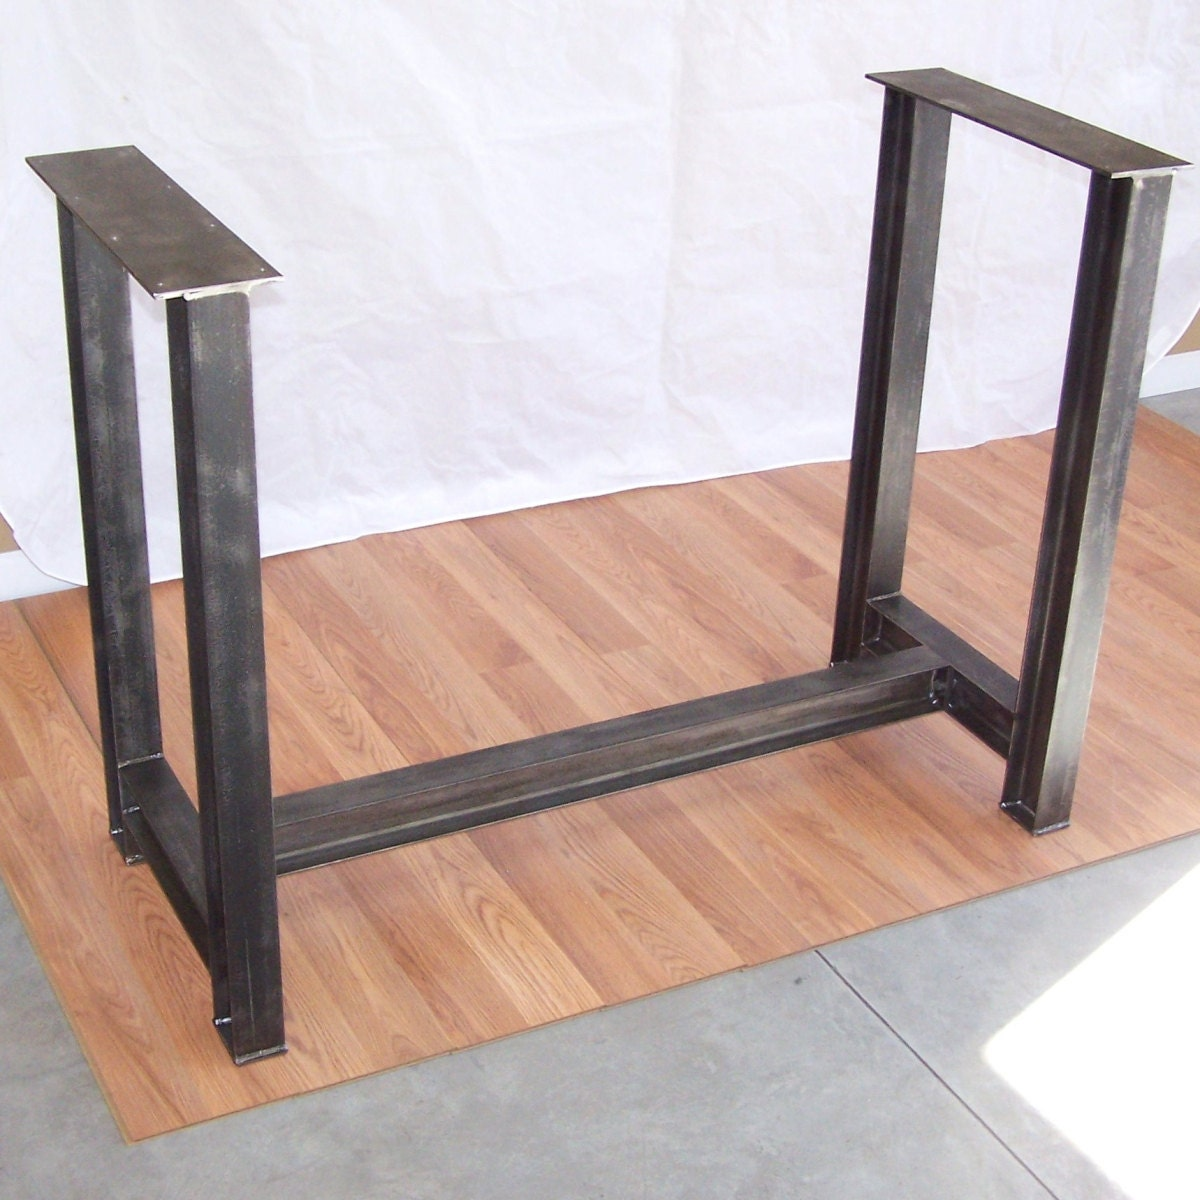 Counter Height Table Base Kit Images Counter Height Table - Counter height table base kit